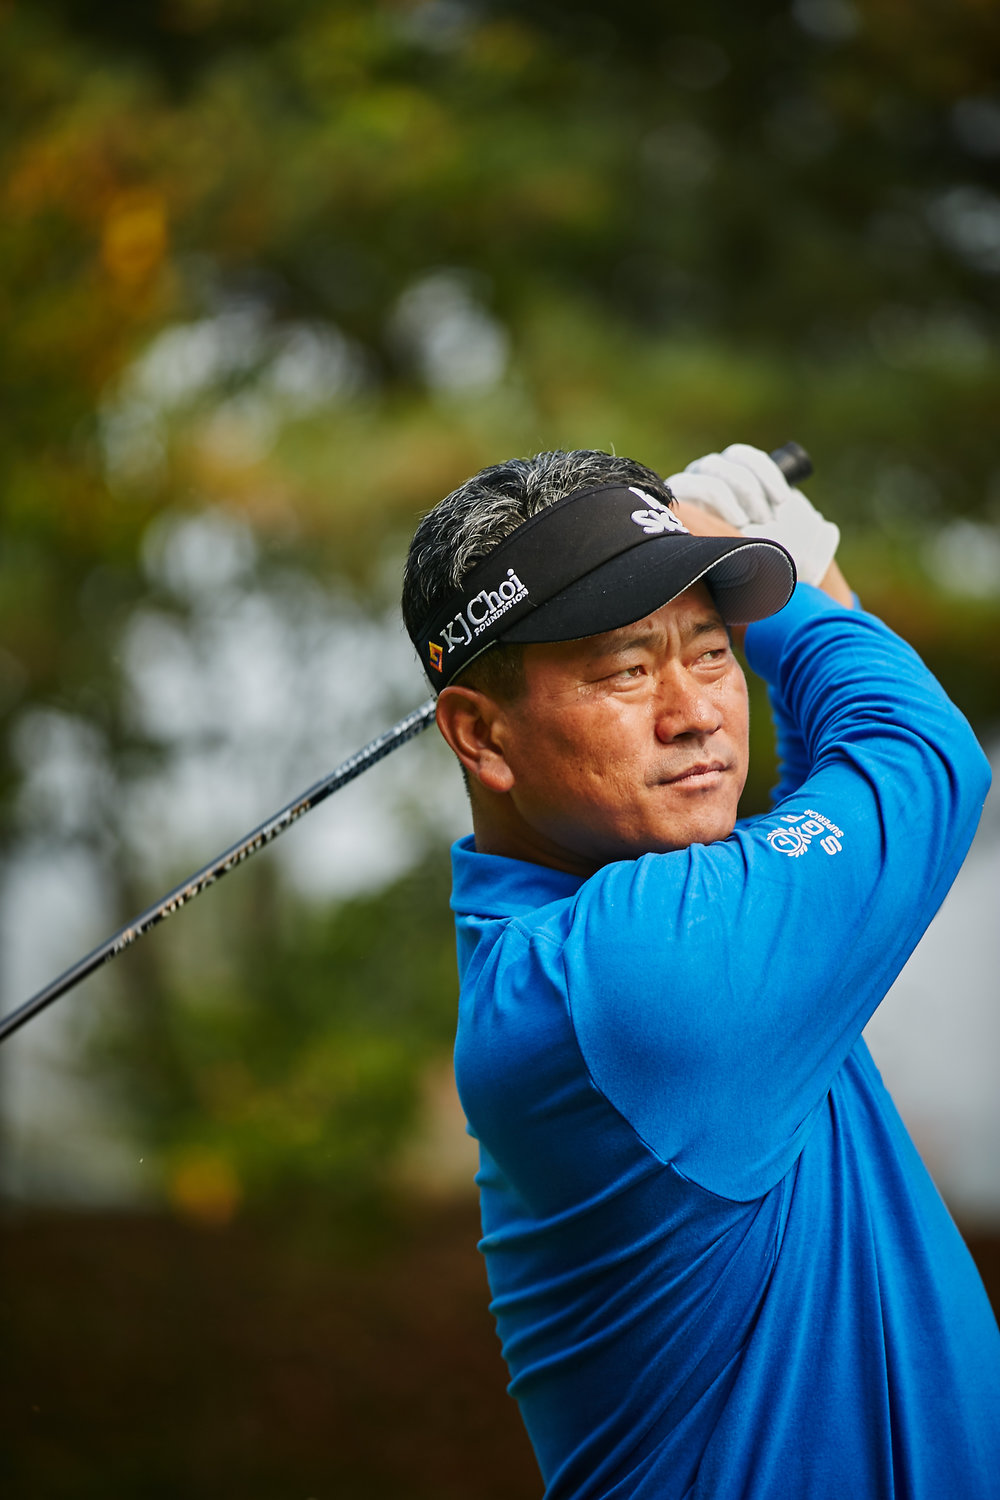 K J Choi, a long-time top Asian golfer, who has entered the New Zealand Open